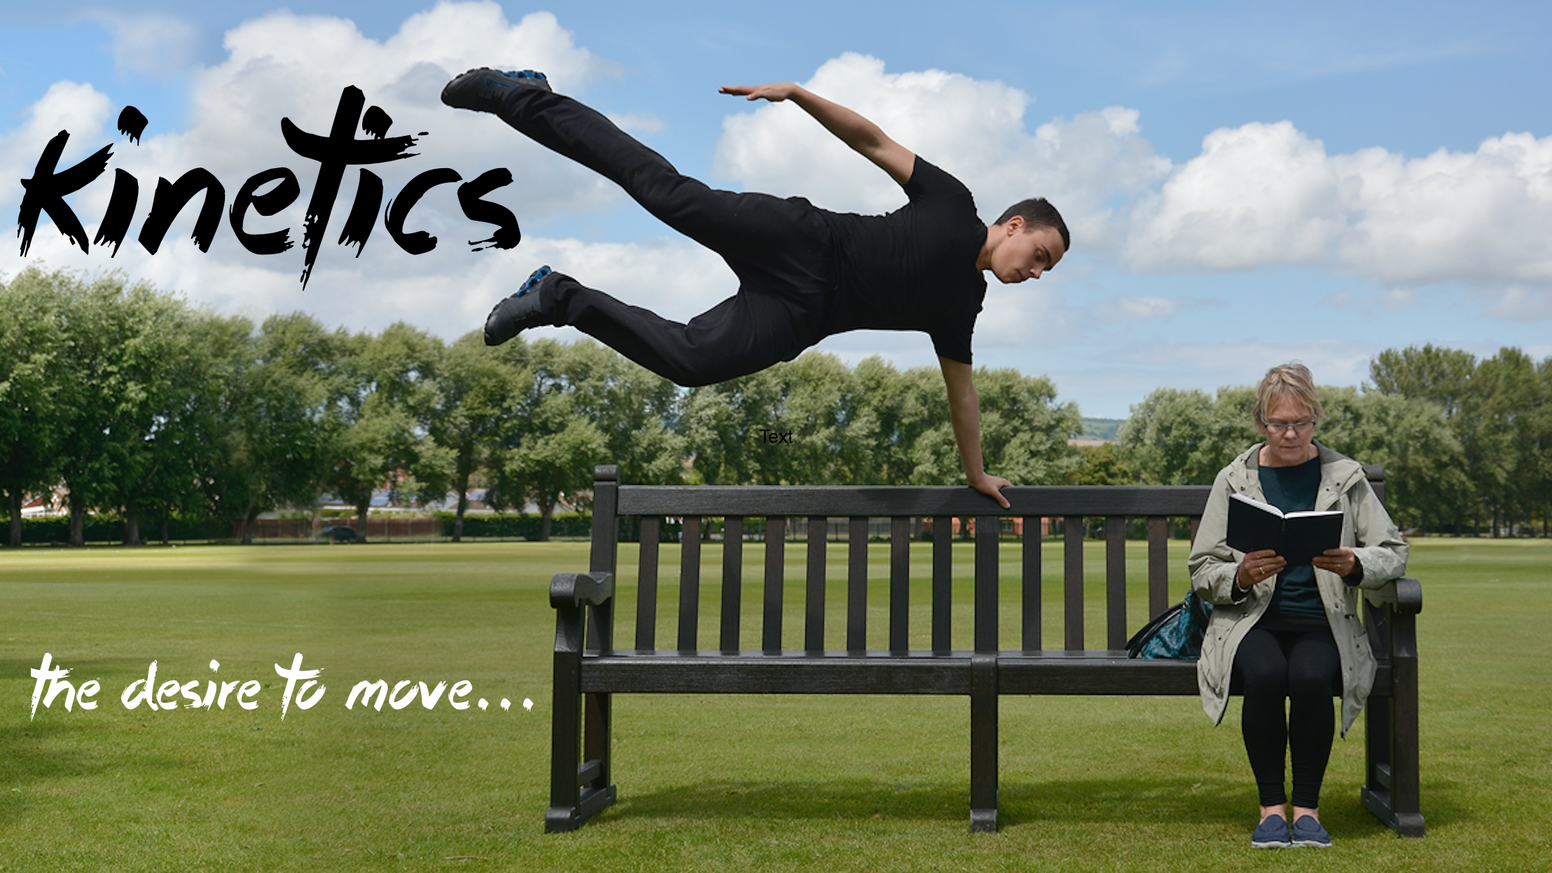 Following a critically acclaimed theatrical tour and the widespread demand, we are turning Kinetics into a short feature film. To watch the final film in full, go to:www.kineticsfilm.com